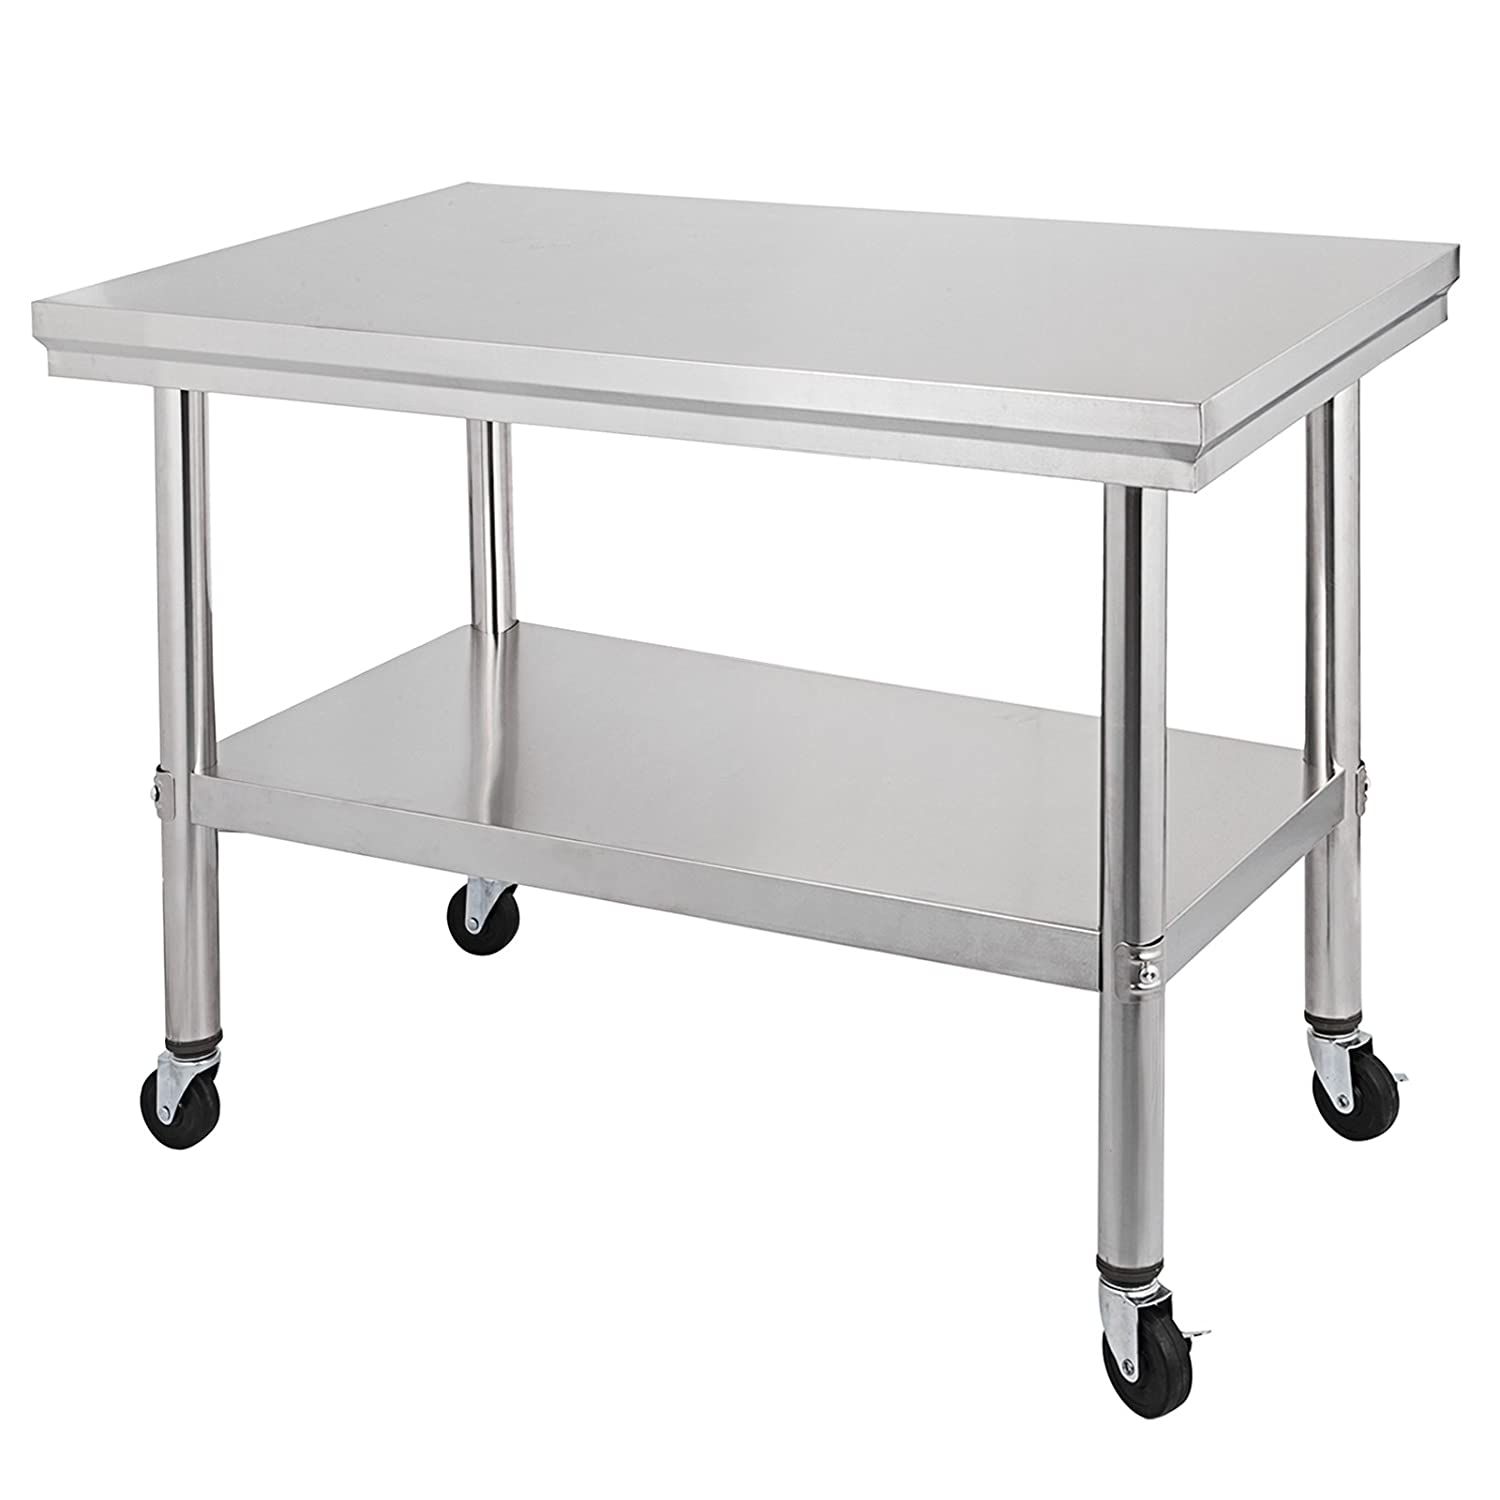 """Mophorn NSF Stainless Steel Work Table with Wheels 30x24 Prep Table with casters Heavy Duty Work Table for Commercial Kitchen Restaurant Business Garage (30""""x24"""")"""